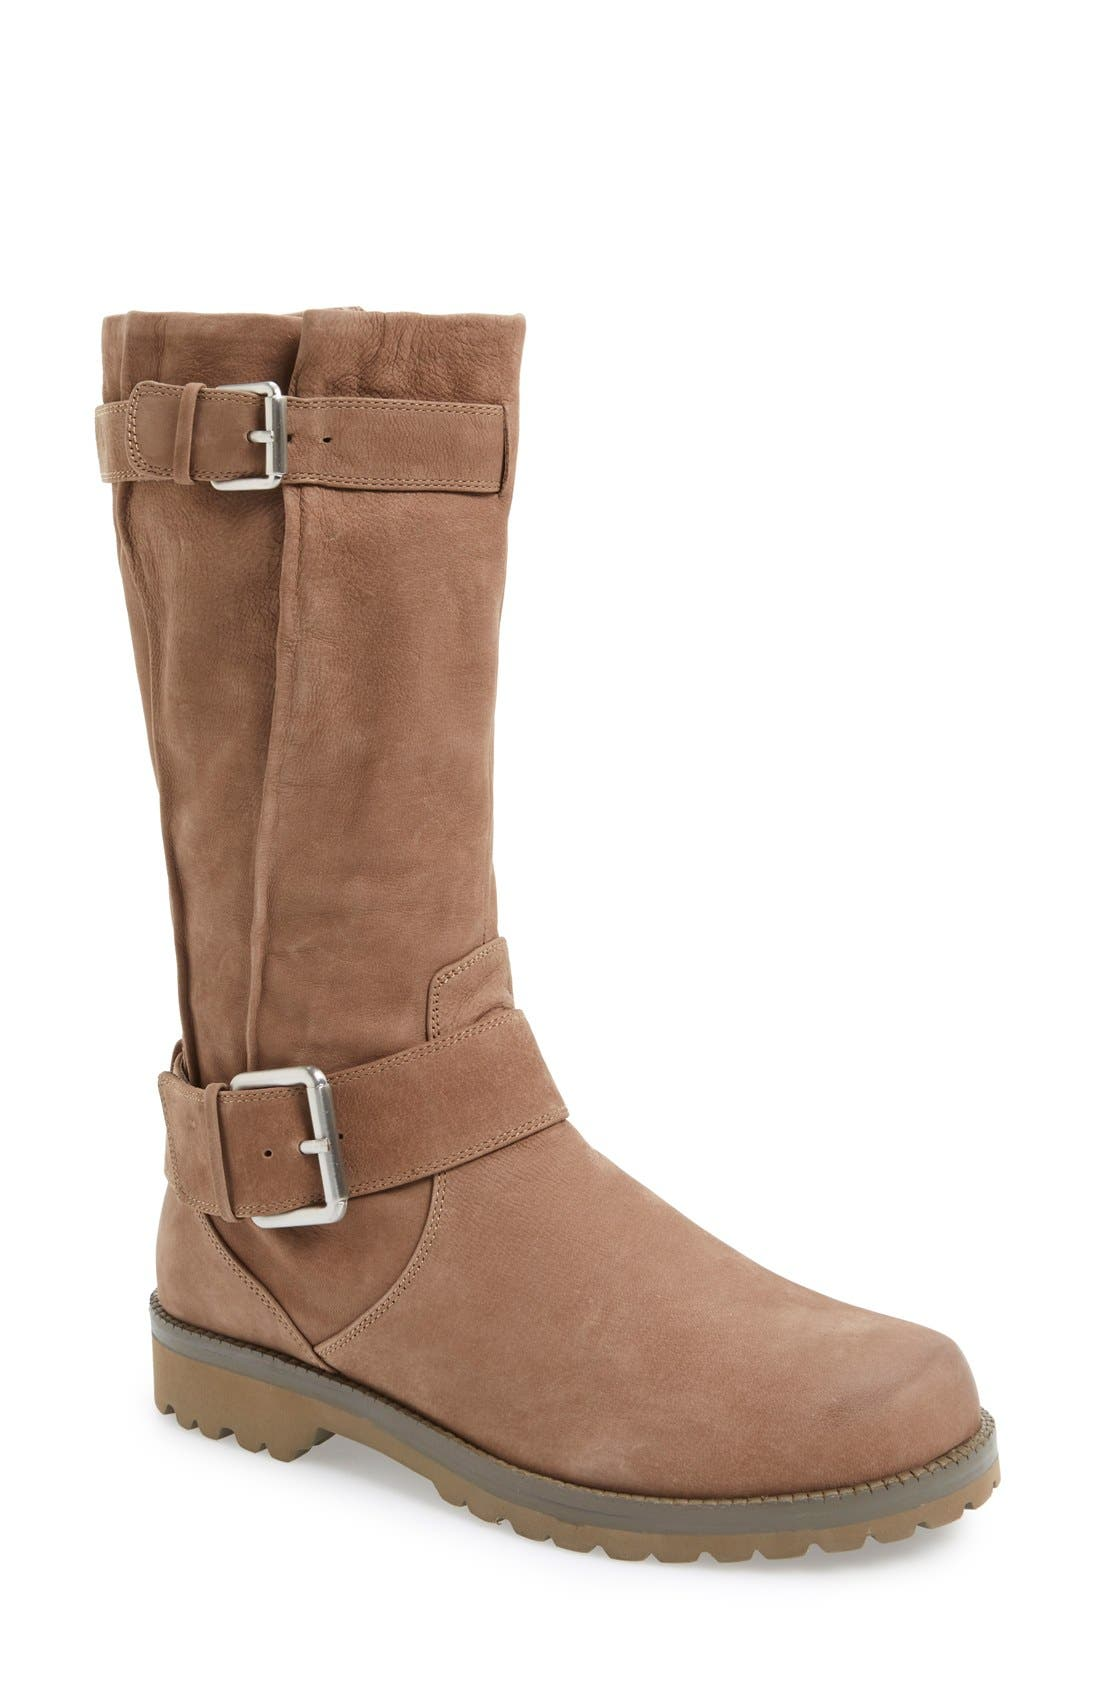 Main Image - Gentle Souls 'Buckled Up' Boot